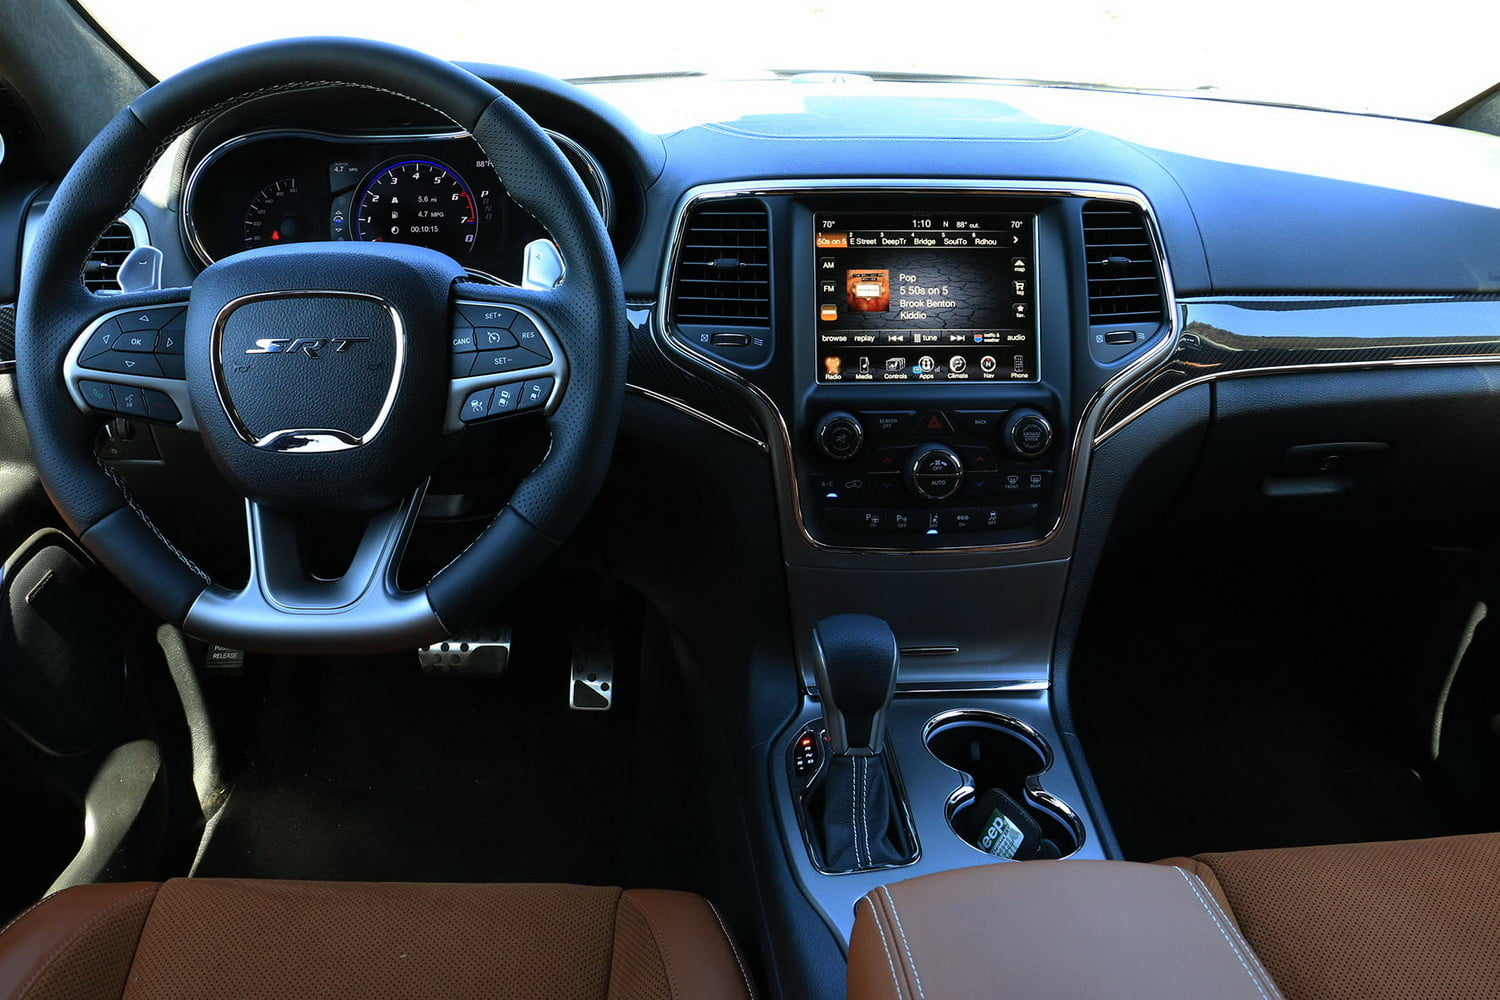 2017 Grand Cherokee Srt Interior >> 2017 Jeep Grand Cherokee Srt Review Digital Trends